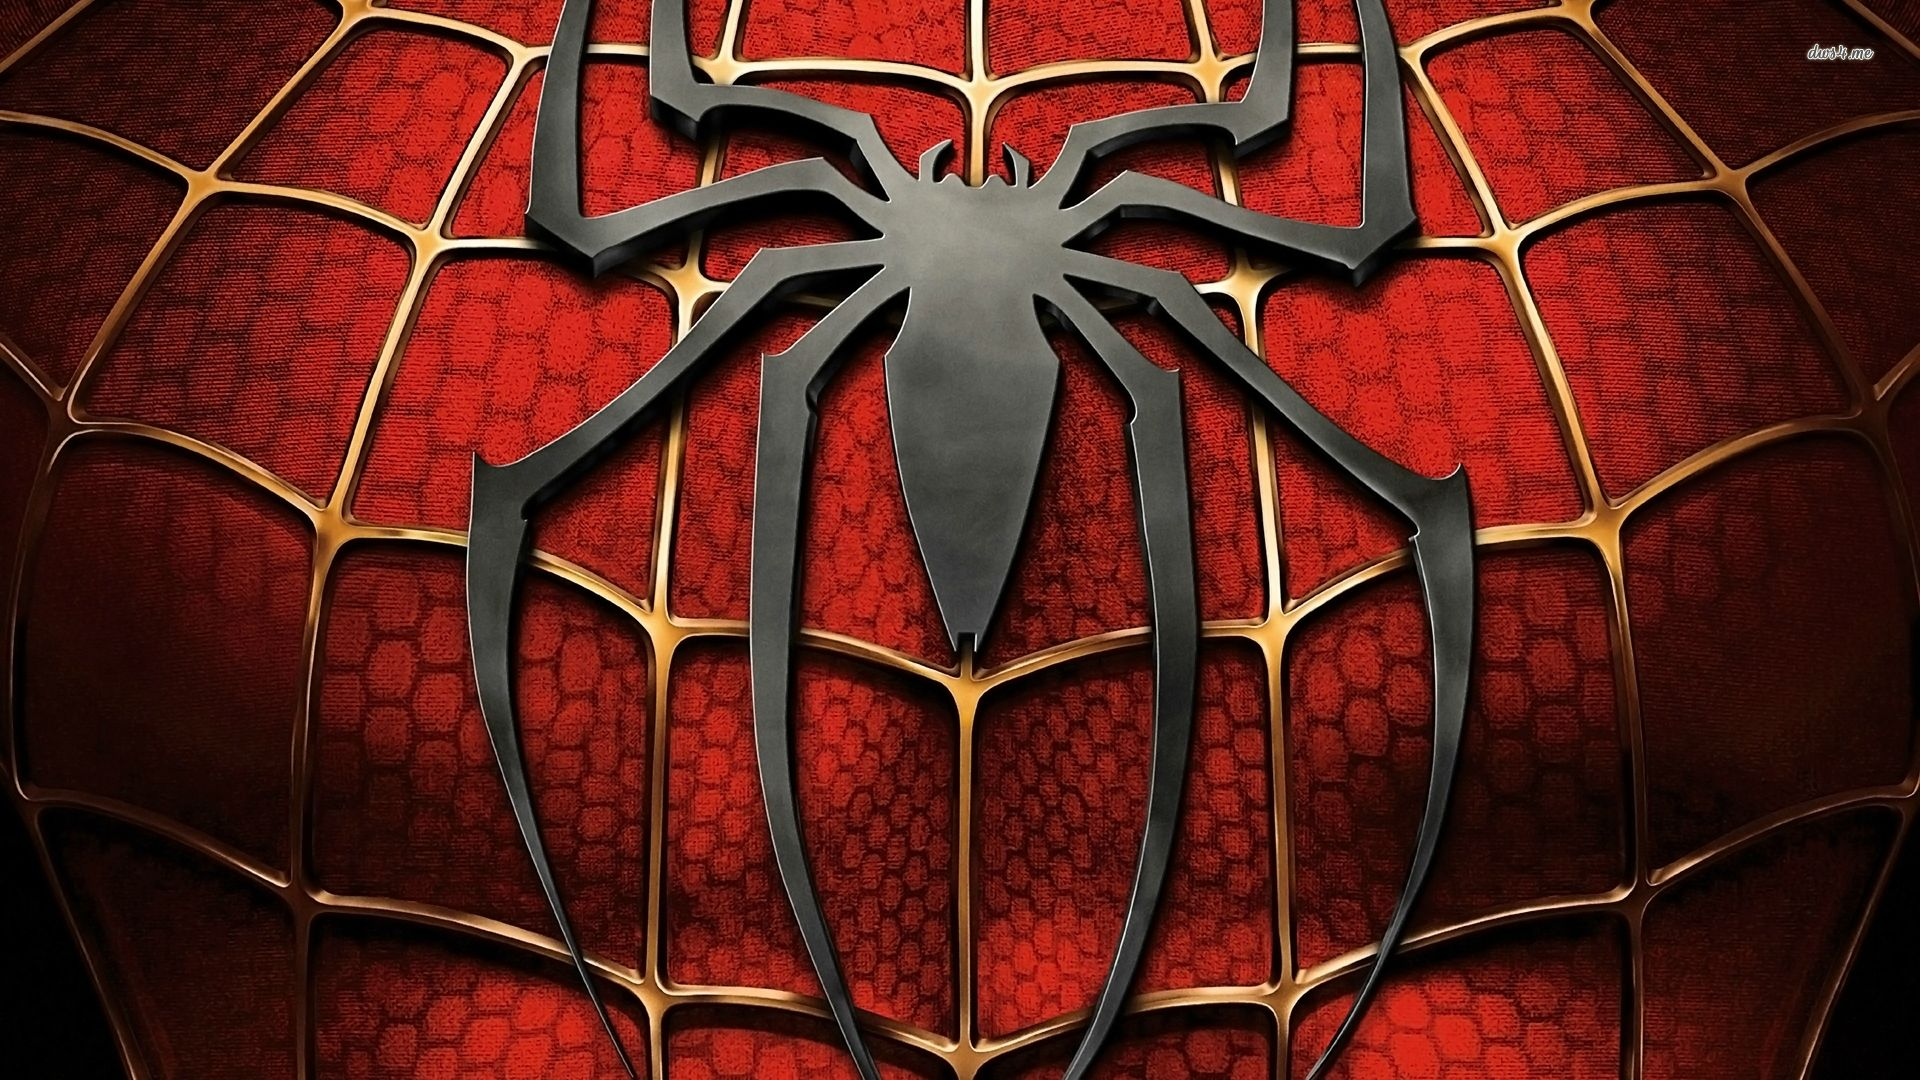 The Amazing Spider Man  Wallpapers HD  Facebook Cover Photos 1920x1080